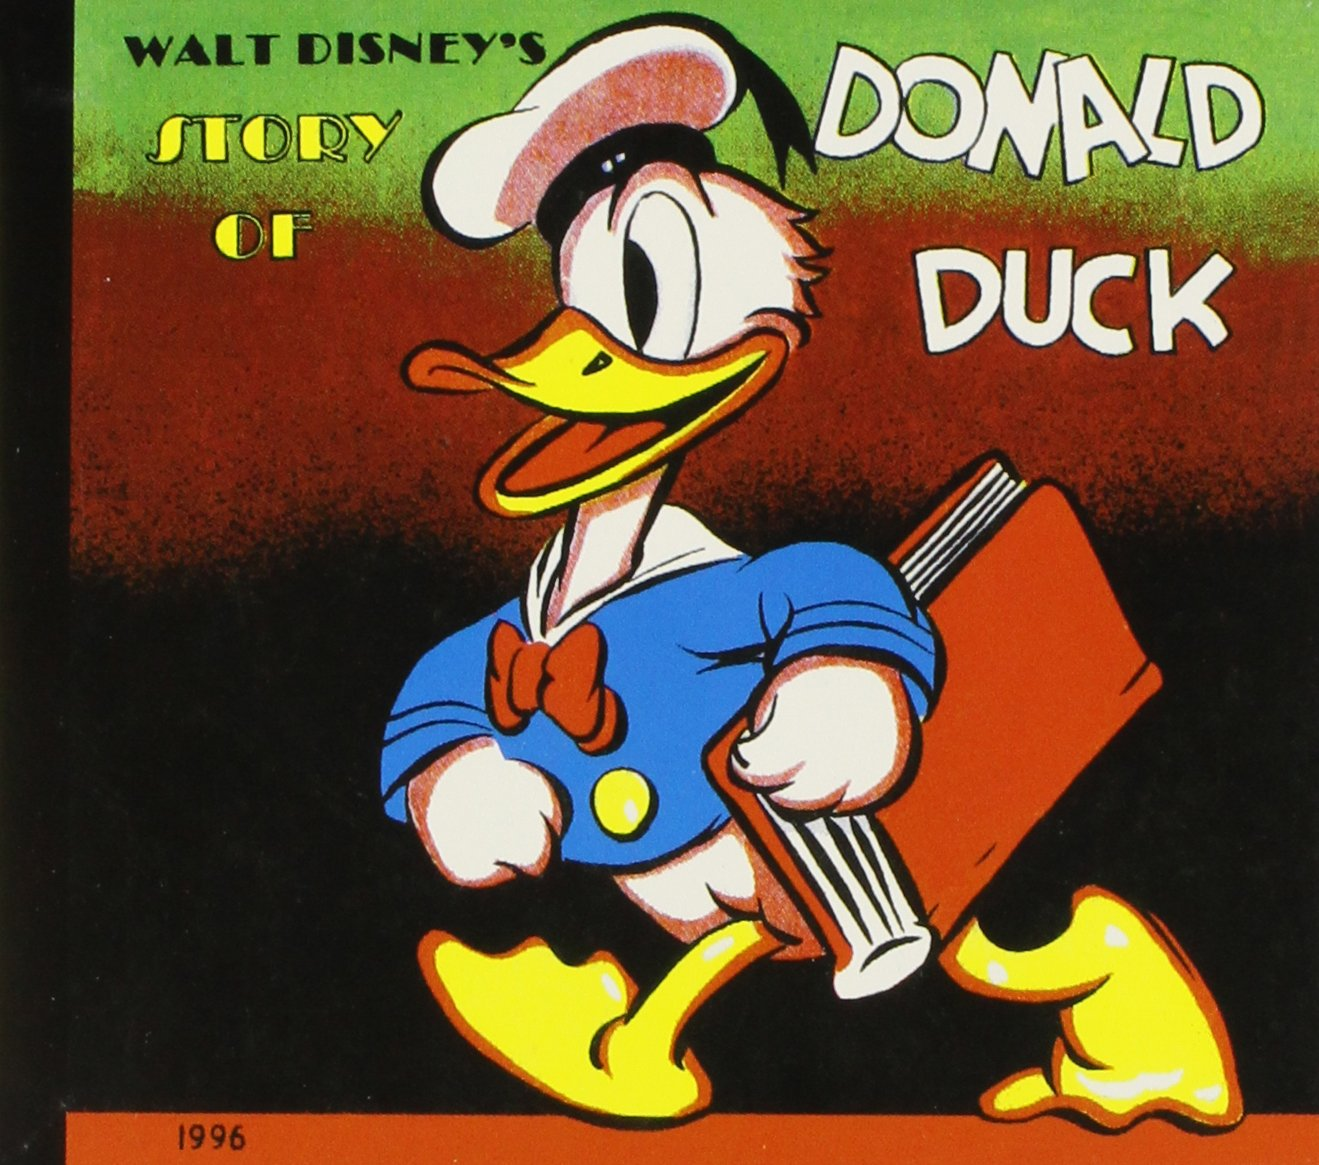 Story of Donald Duck